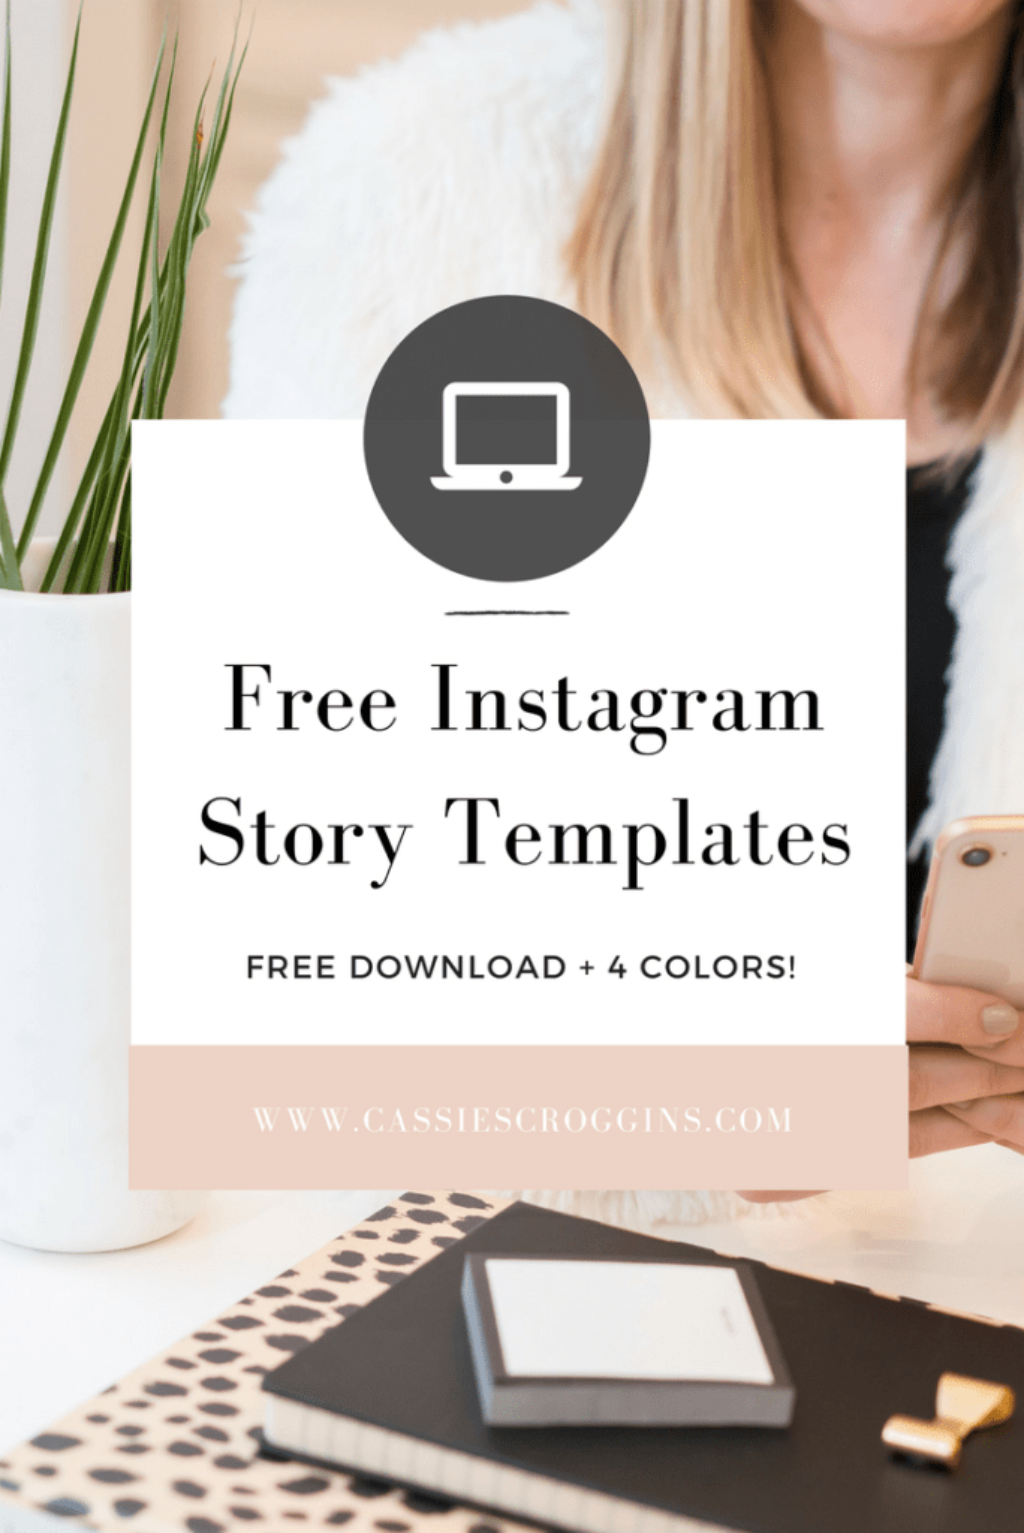 Instagram Story Templates - Free Download (9 Templates in 4